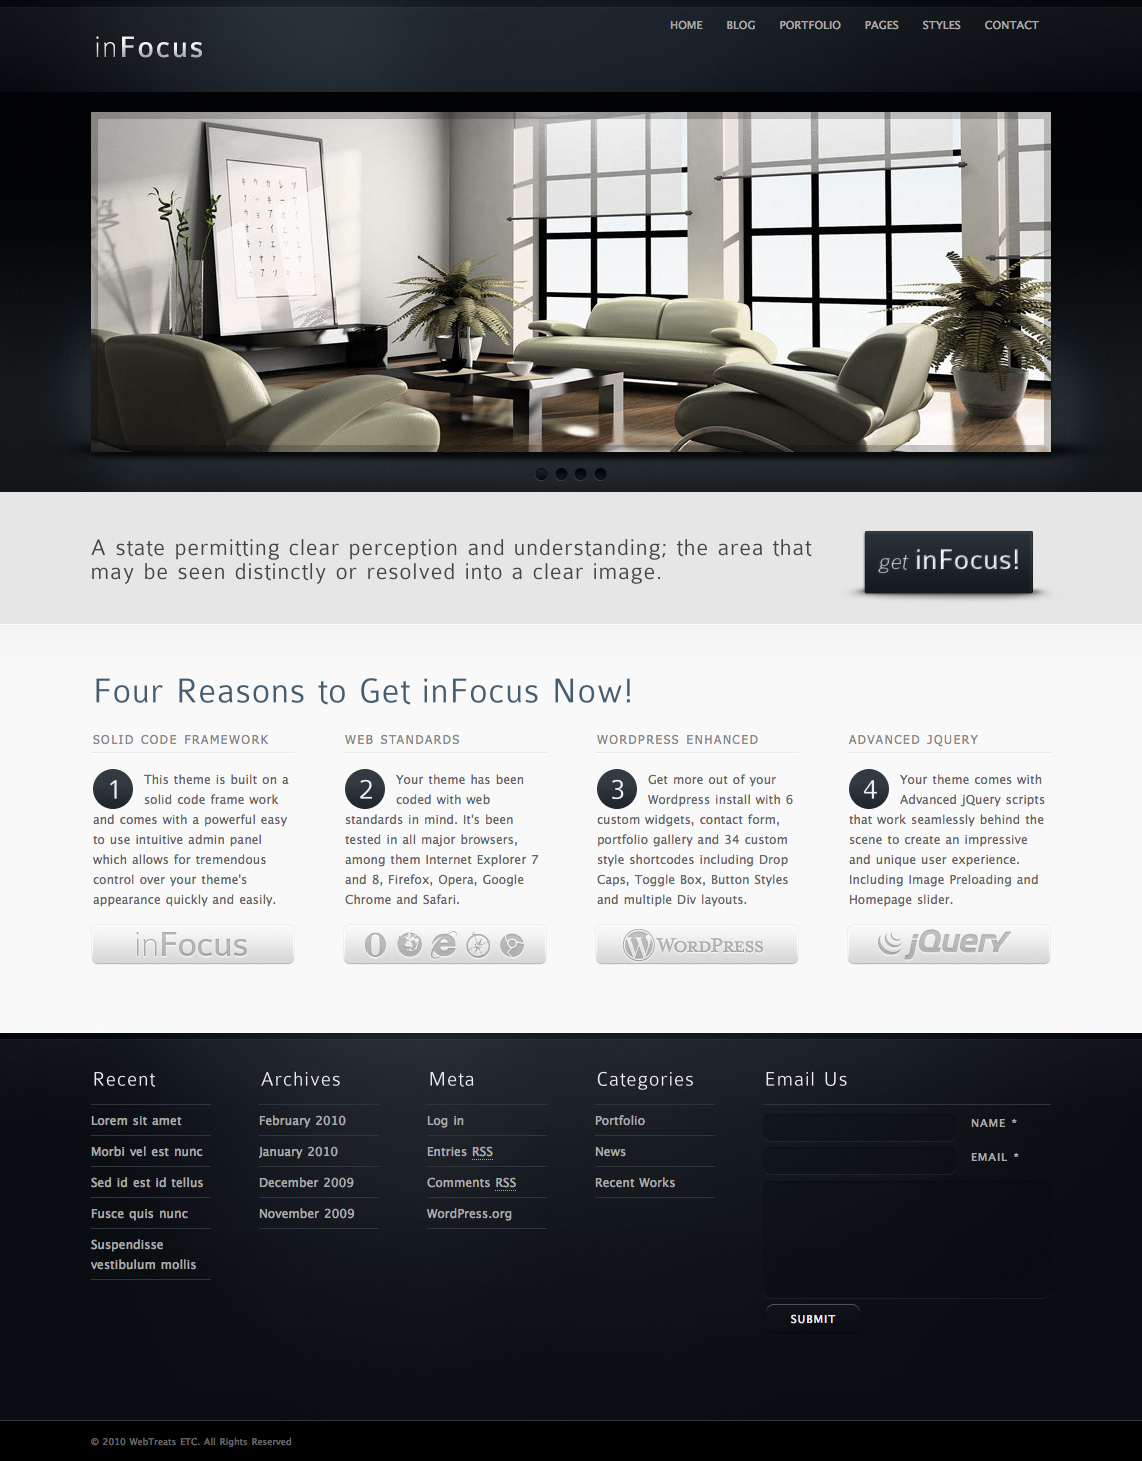 65 superb wordpress themes for entrepreneurs wp solver for What wordpress template is this